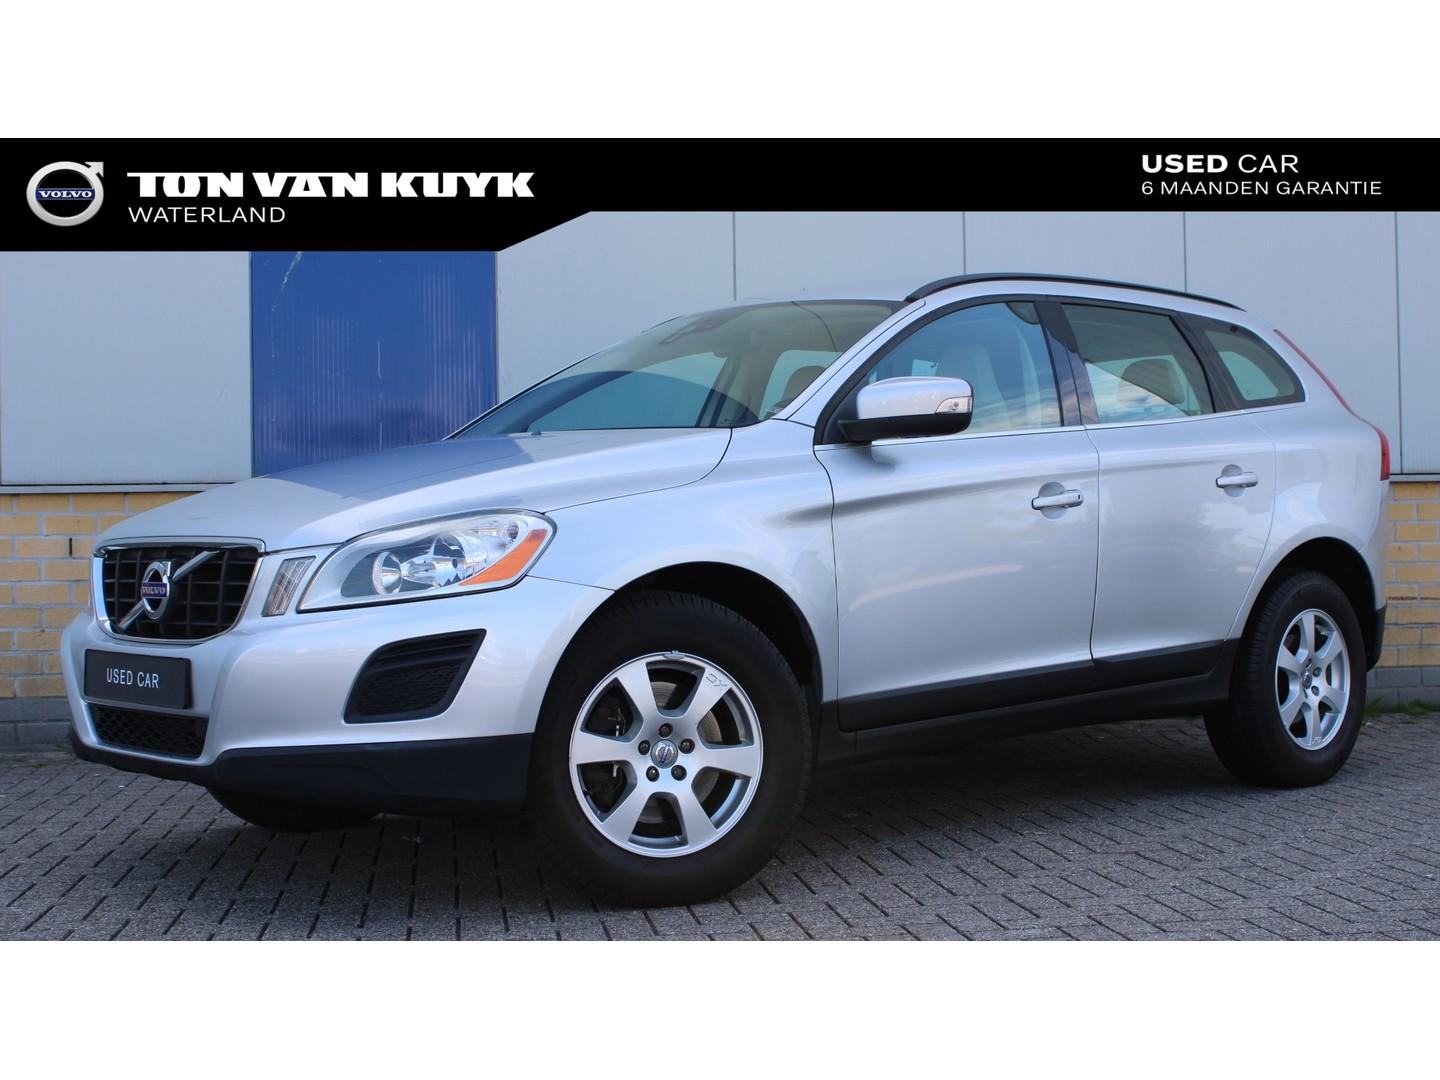 Volvo Xc60 2.0t automaat momentum / climate control / cruise control